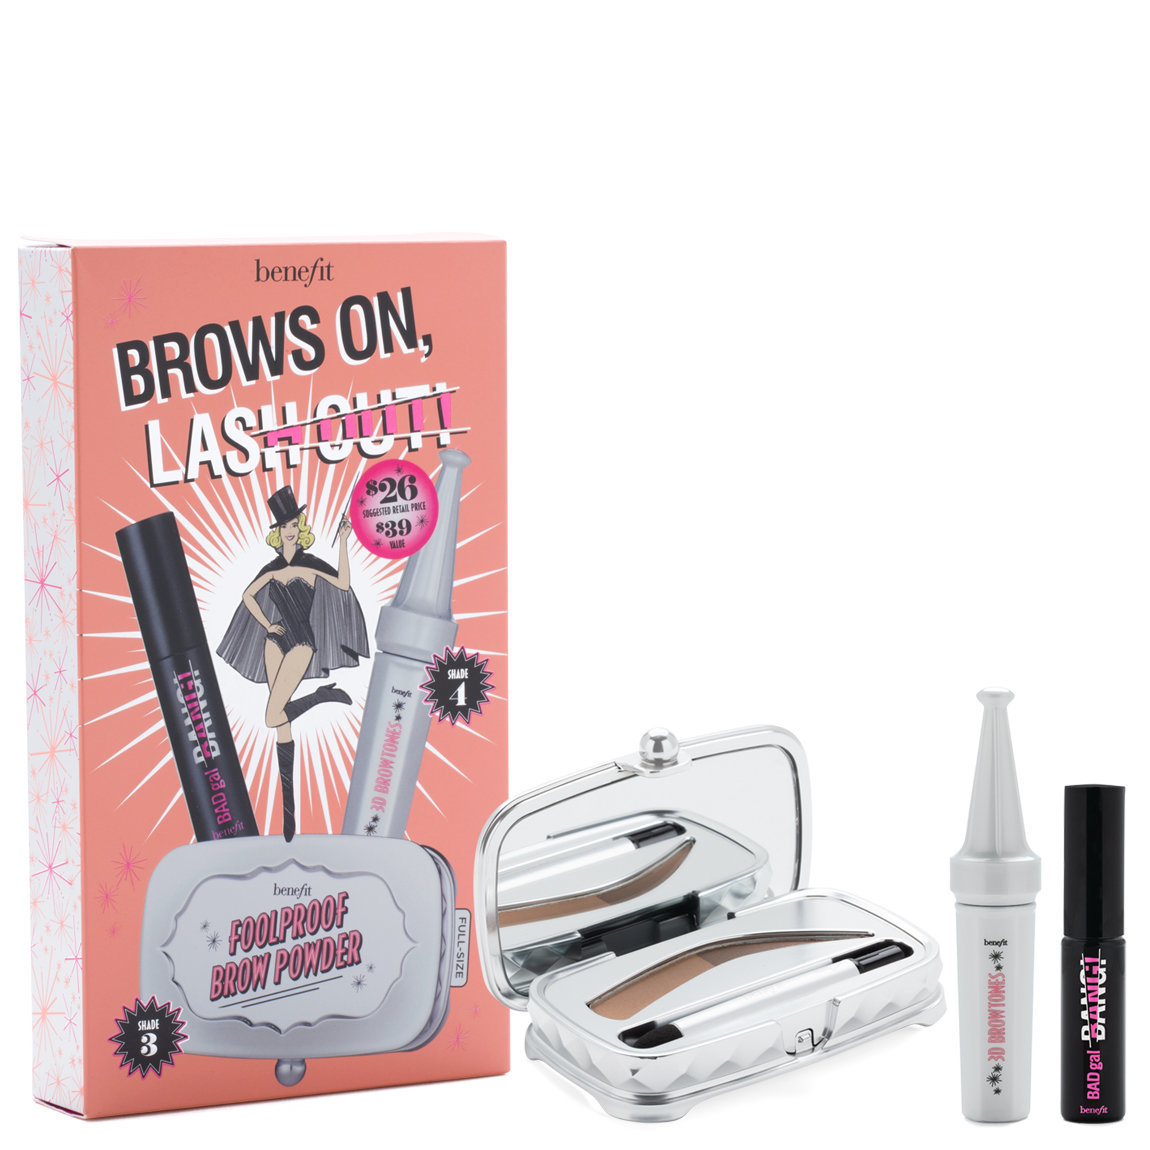 Benefit Cosmetics Brows On, Lash Out! Brow & Mascara Set product smear.